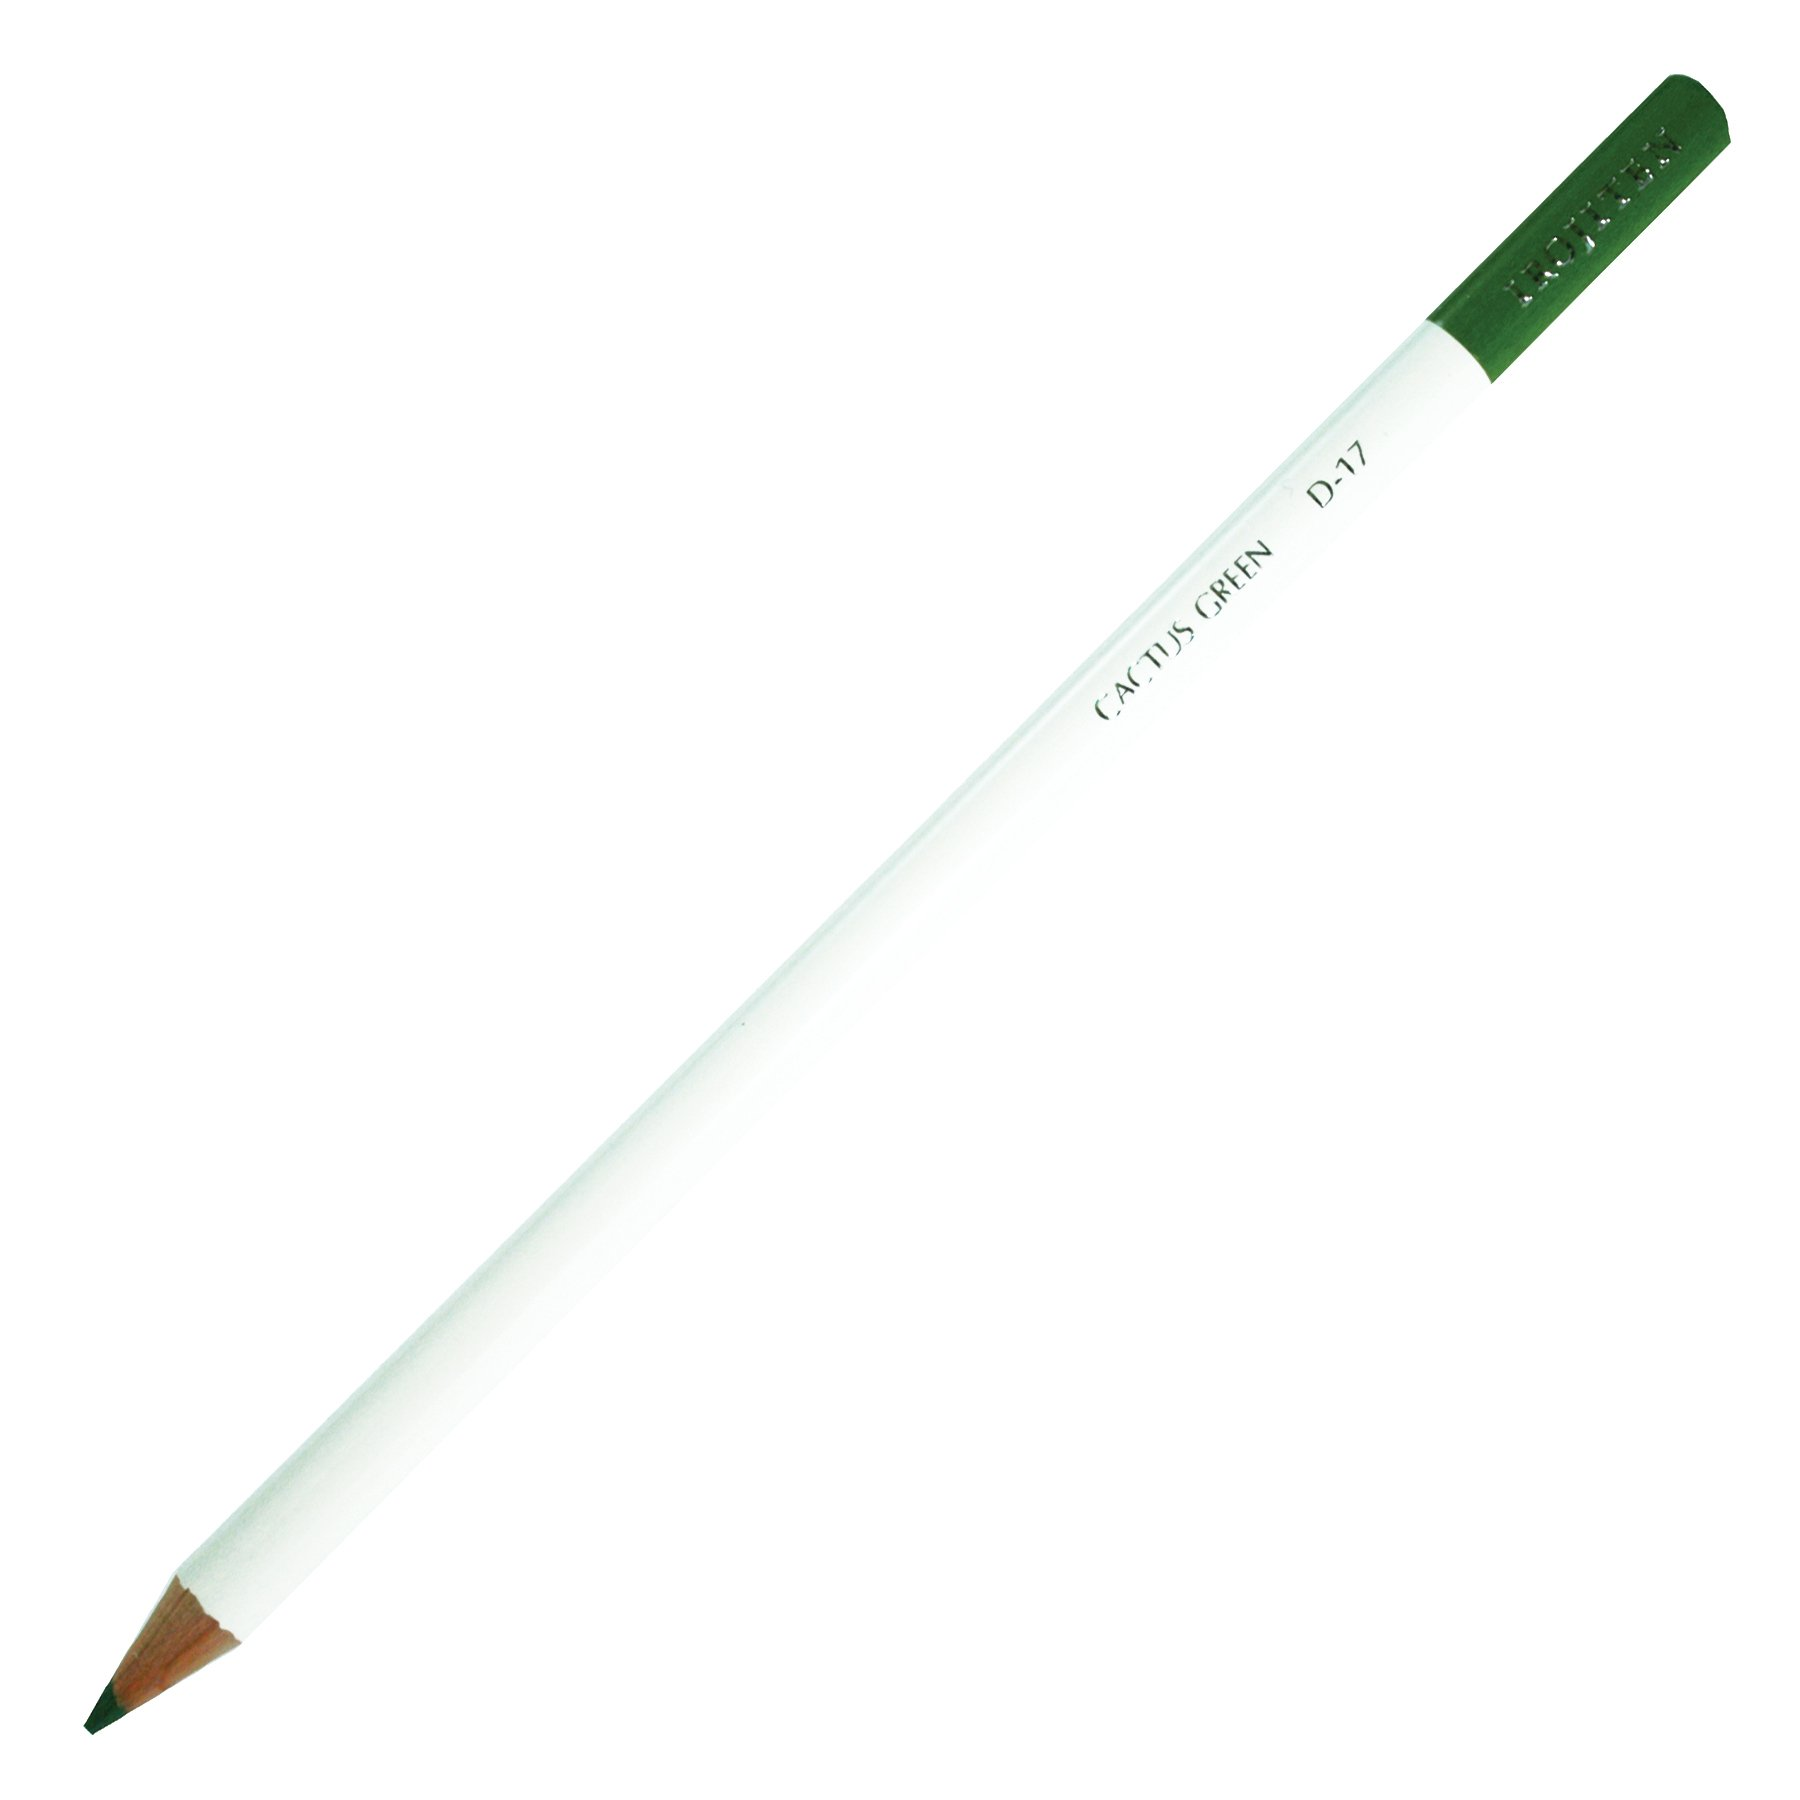 Tombow Irojiten Colored Pencil, Cactus Green D17, 6-Pack